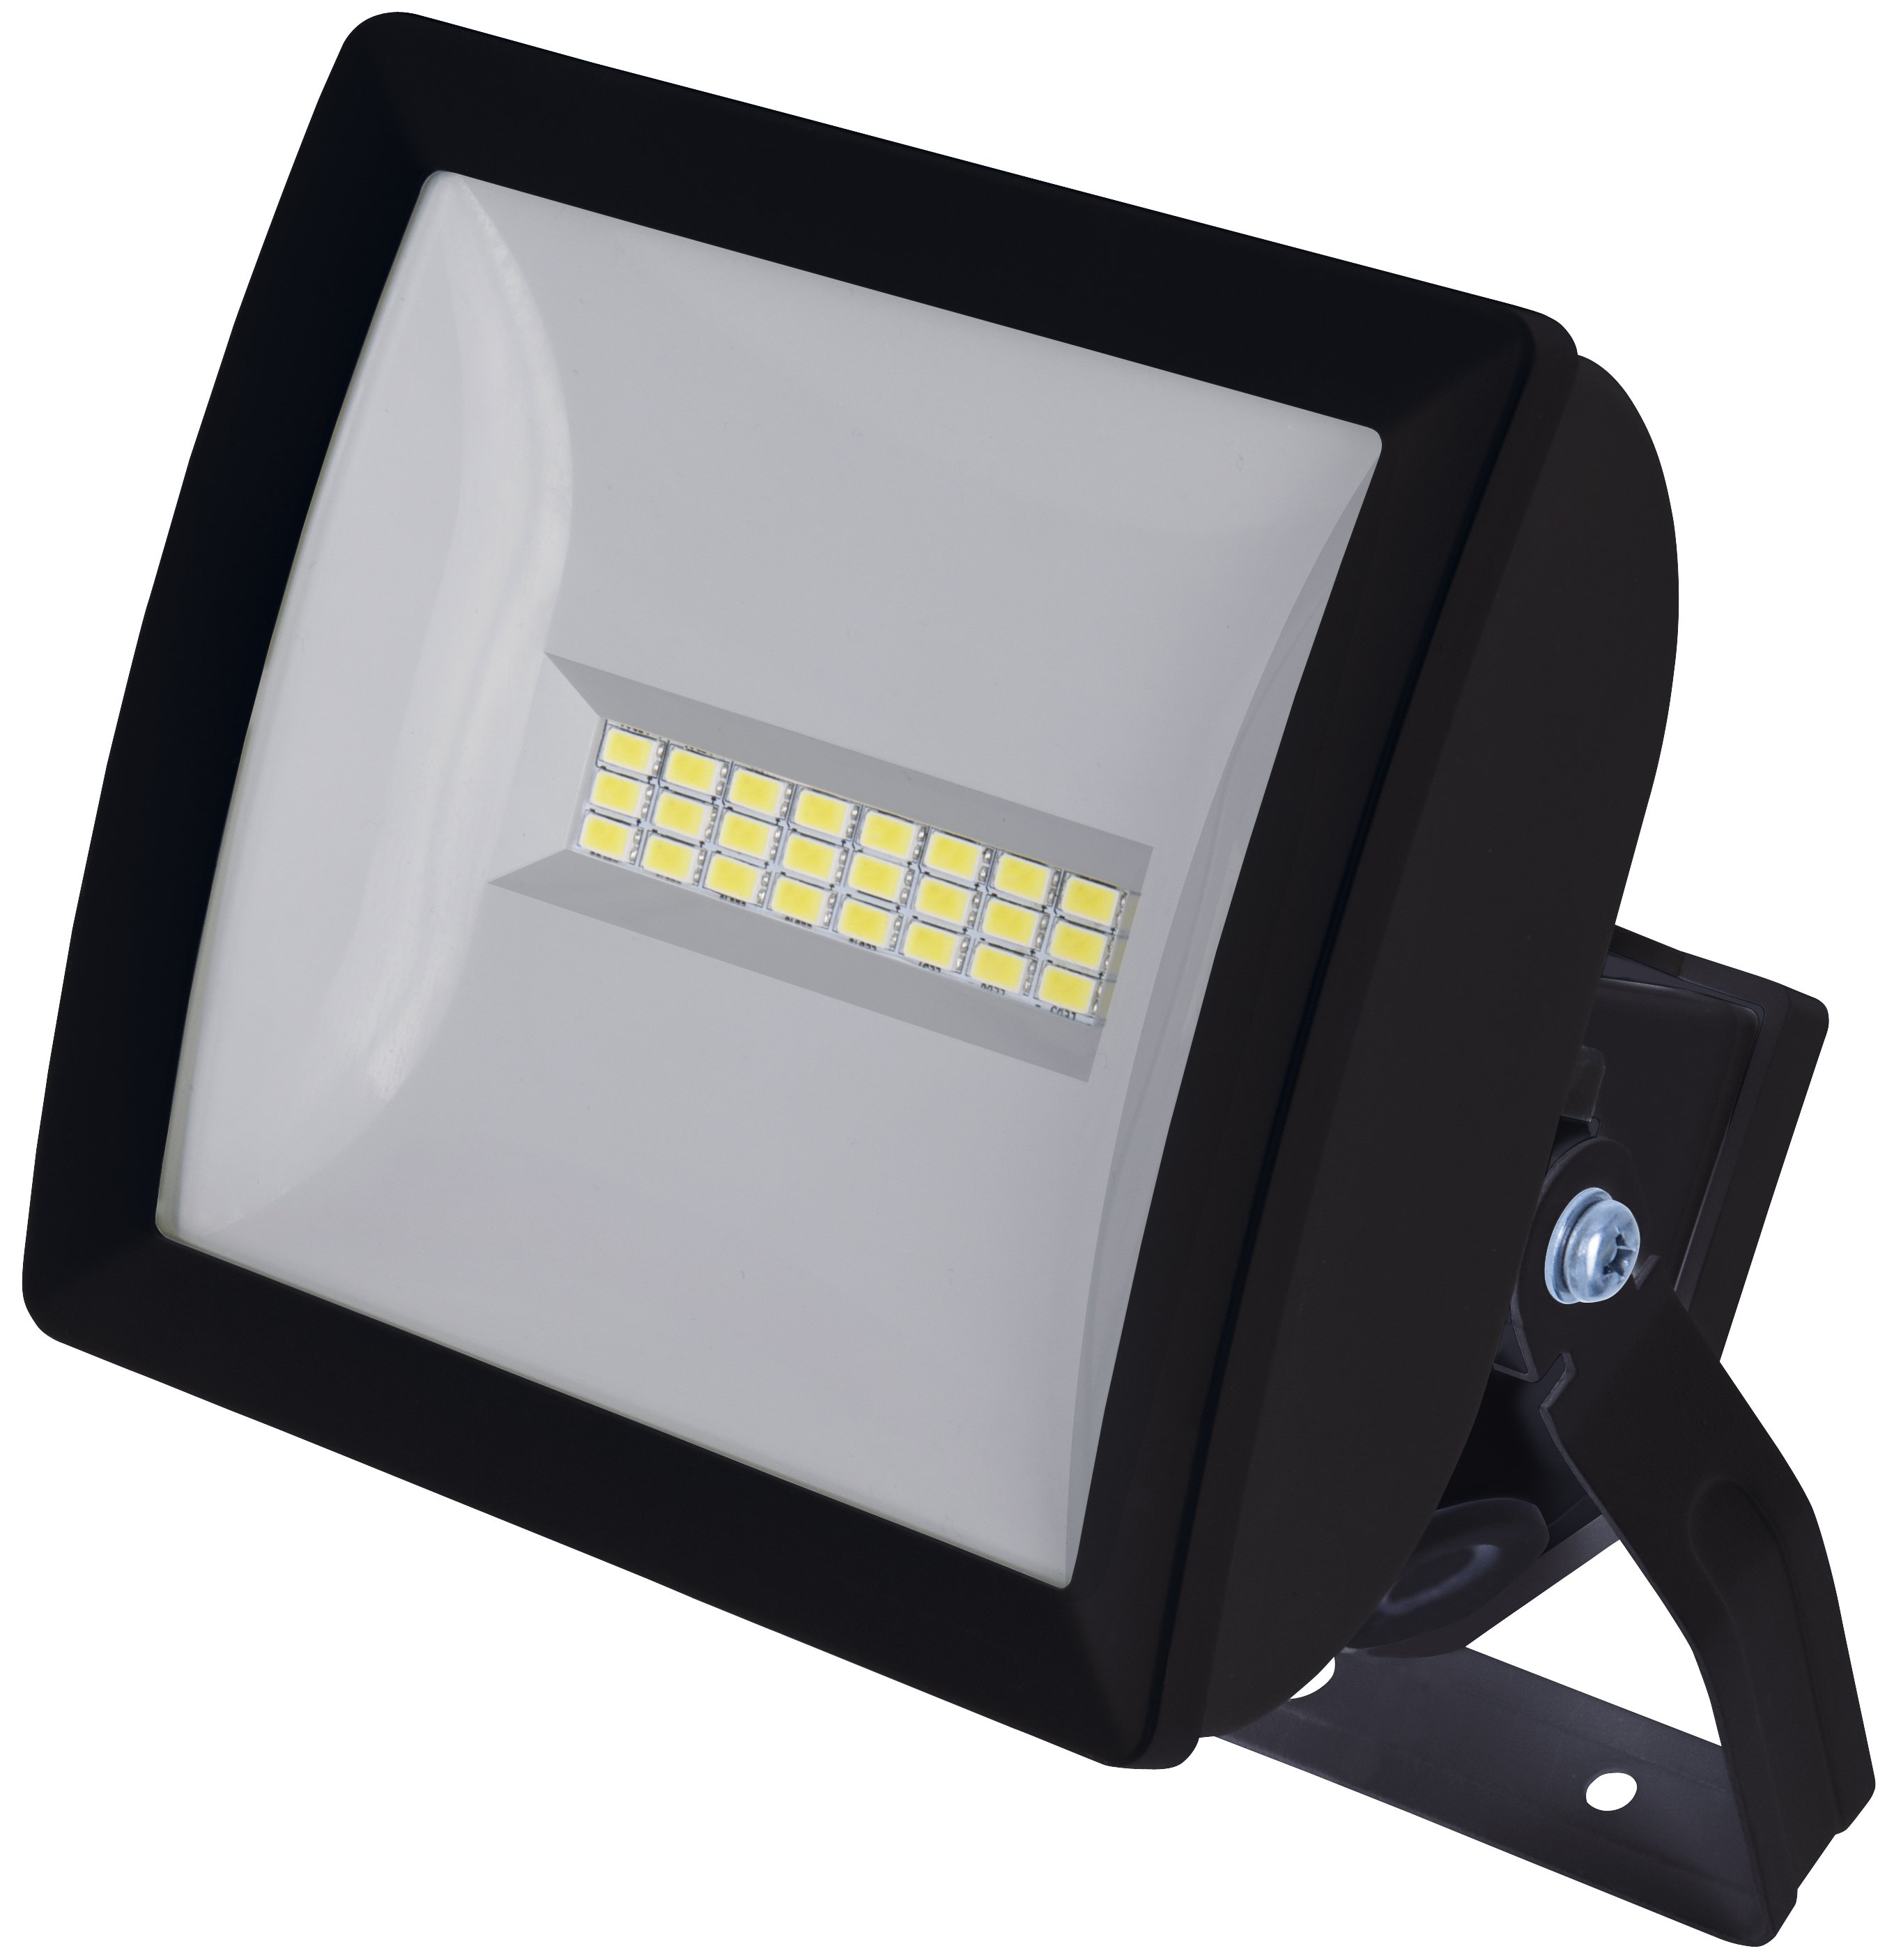 Timeguard floods the LED market